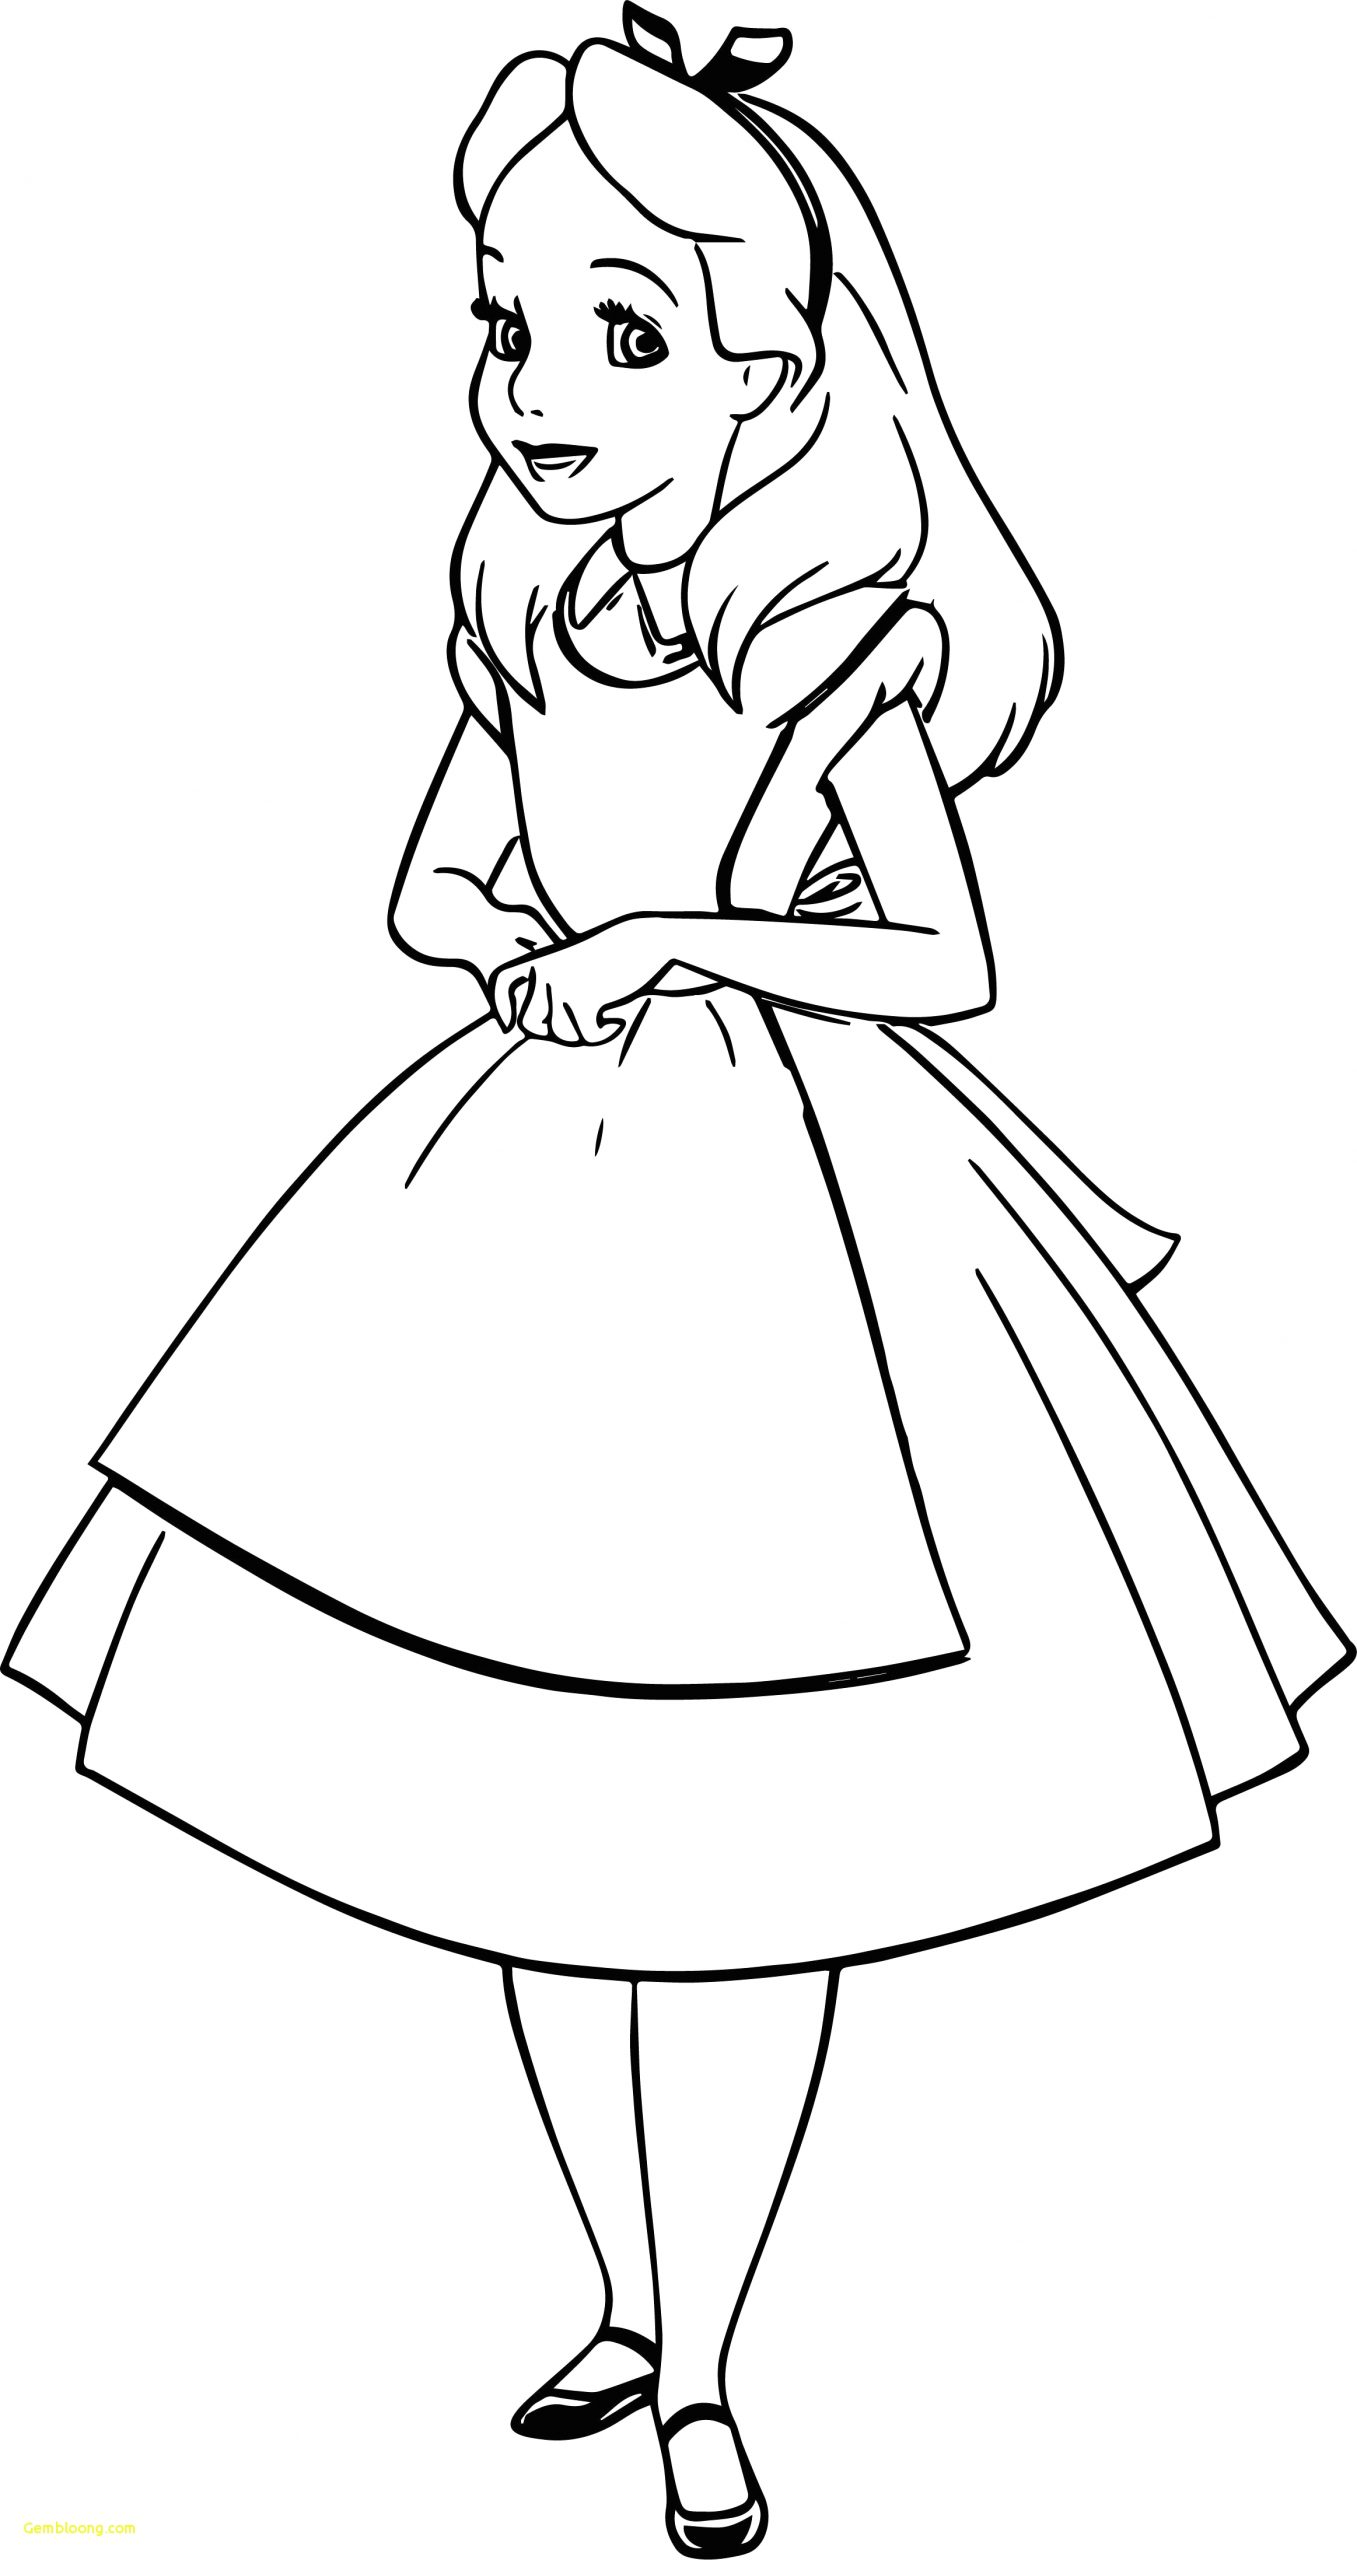 coloring pages of alice in wonderland characters